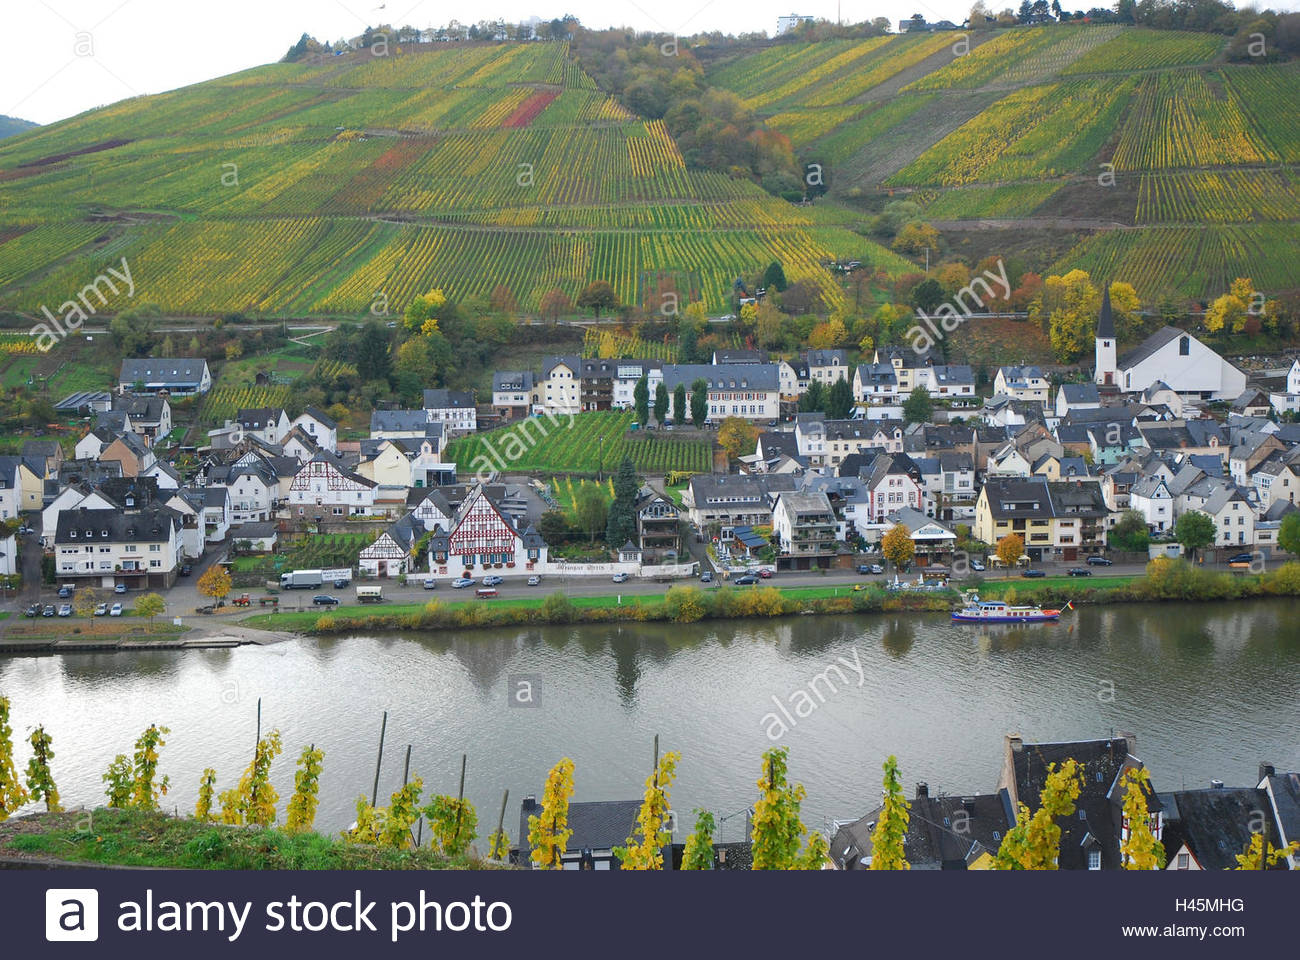 Zell The Rhineland, Germany, Rhineland-Palatinate, Zell, the Moselle, Zell-Kaimt, town ...